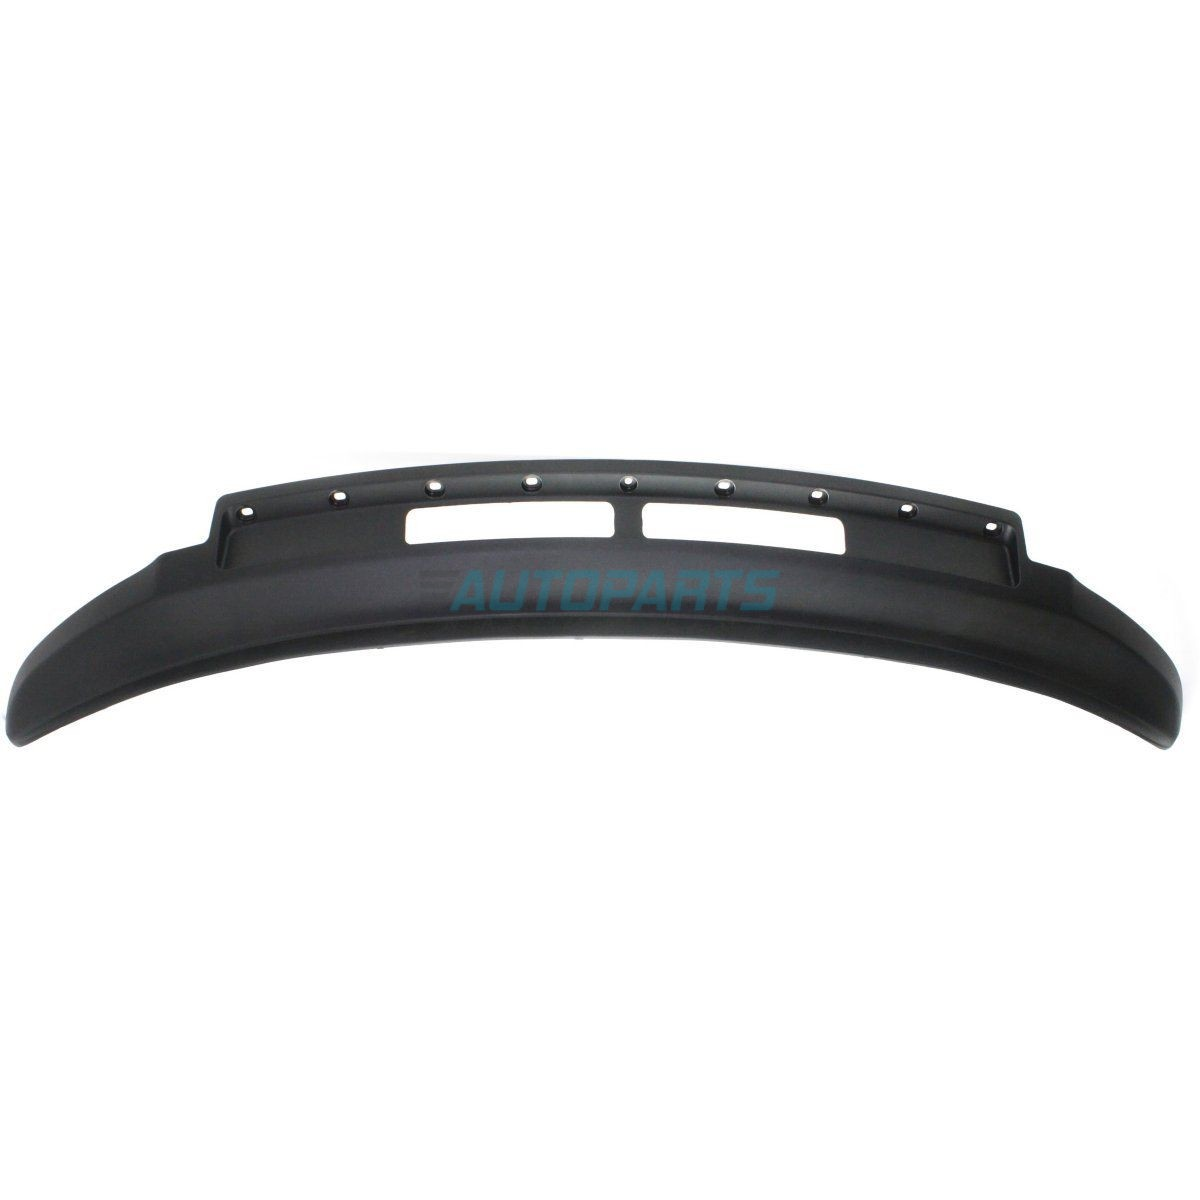 New Front Bumper Trim For Dodge Dart 2013-2016 CH1044110